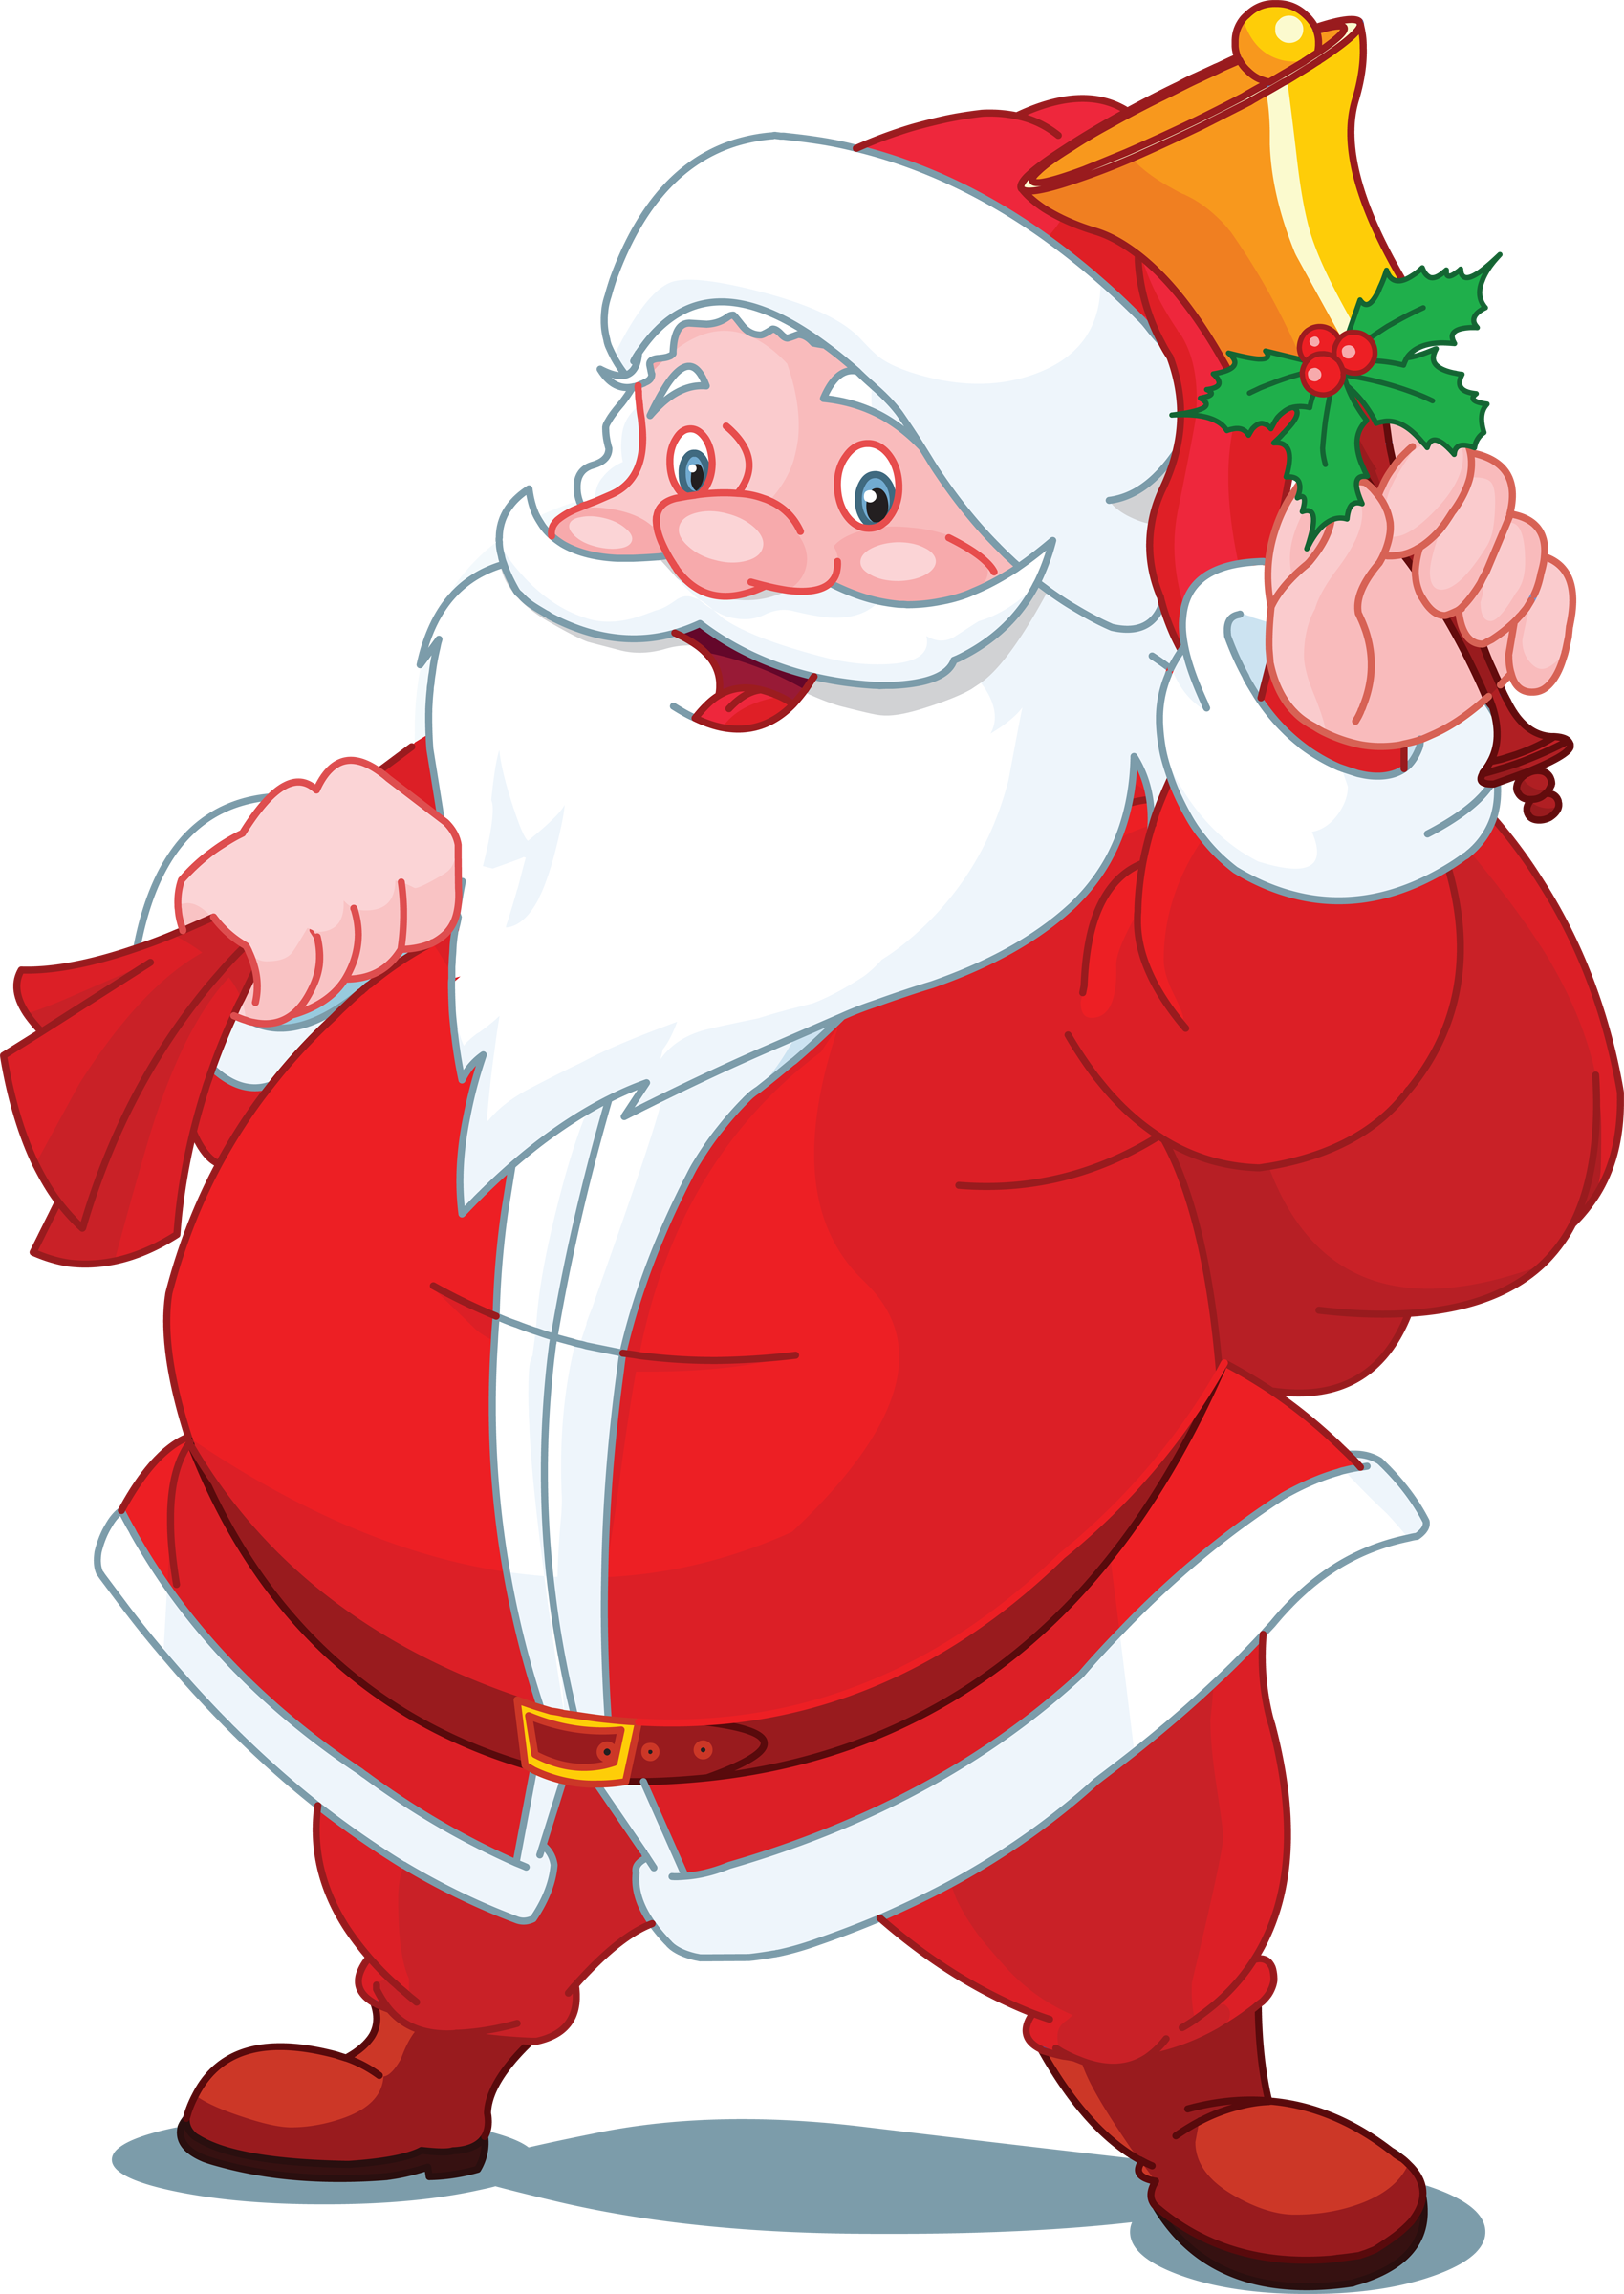 Santa money clipart graphic library library santa claus - Google Search | Christmas projects | Pinterest | Santa ... graphic library library